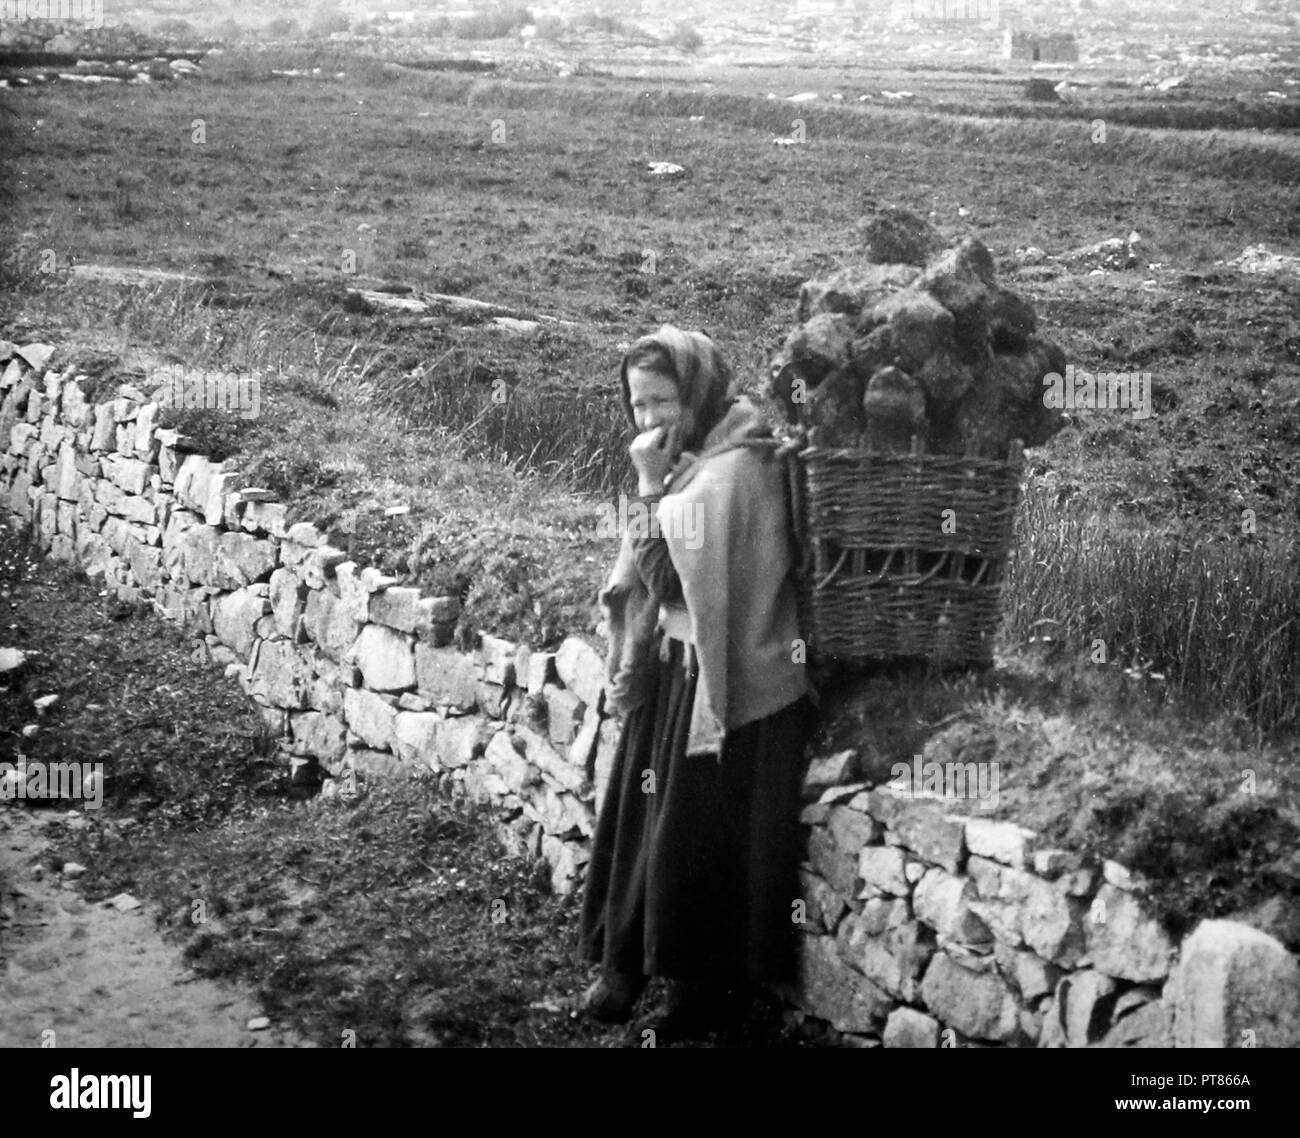 Carrying turf in a creel, West of Ireland, early 1900s - Stock Image